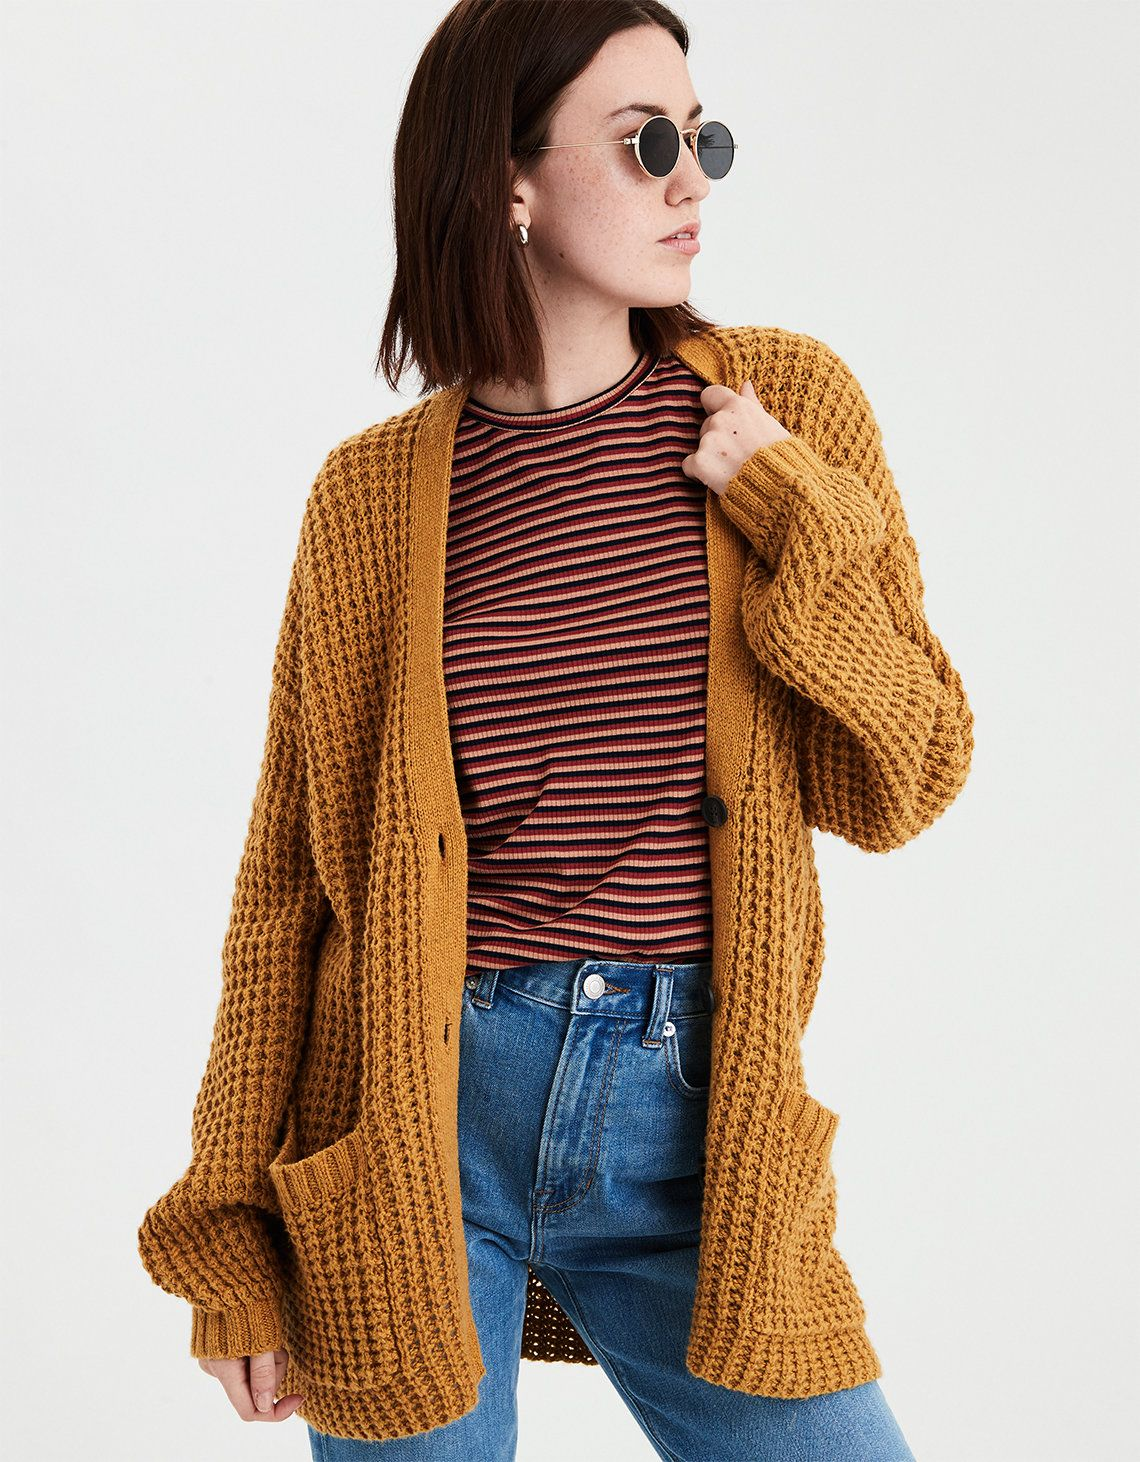 5a8c86cf885 Image for the product Mustard Cardigan Outfit